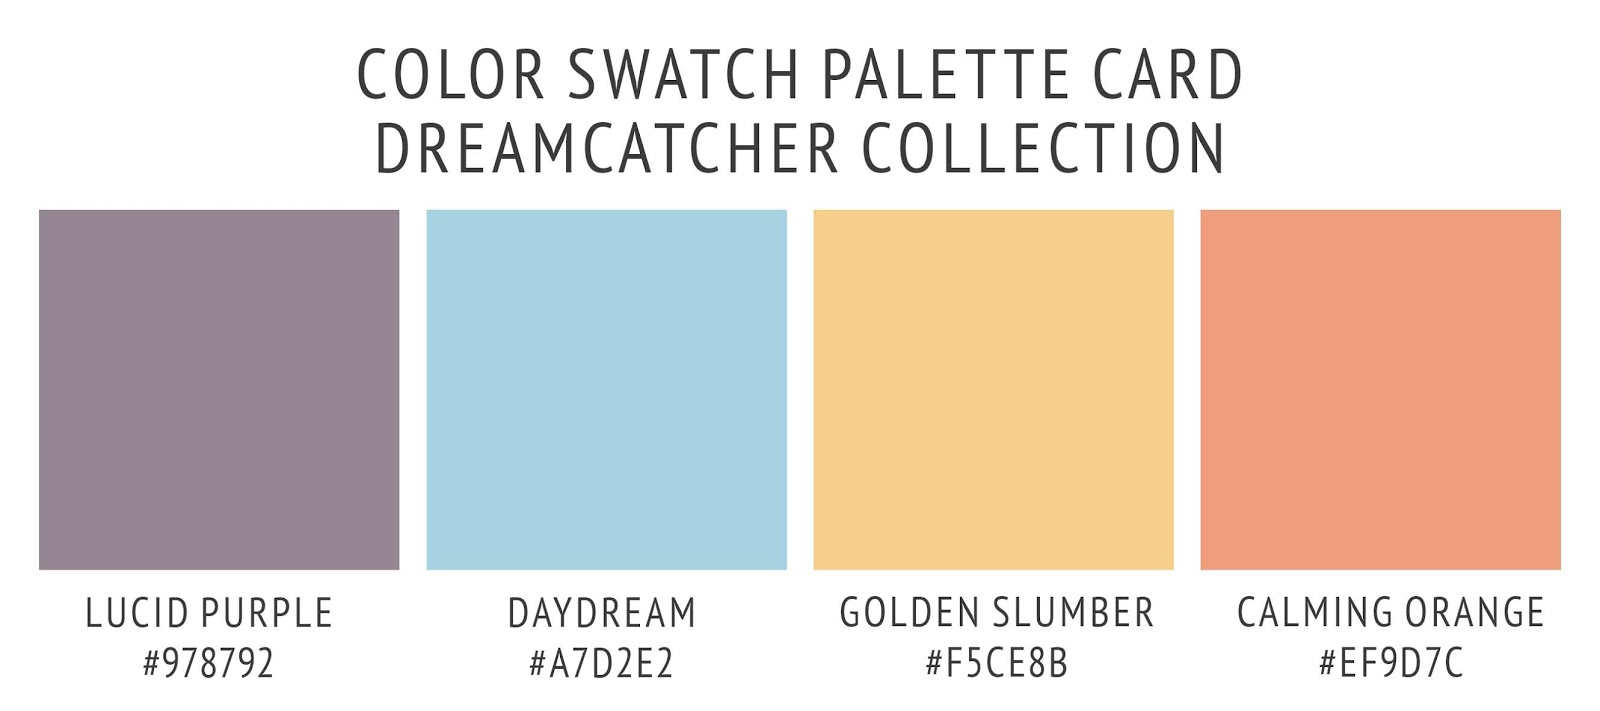 Boho dreamcatcher collection's color palette card. With swatches and color hex codes. In lucid purple, daydream blue, golden slumber yellow, and calming orange color scheme.